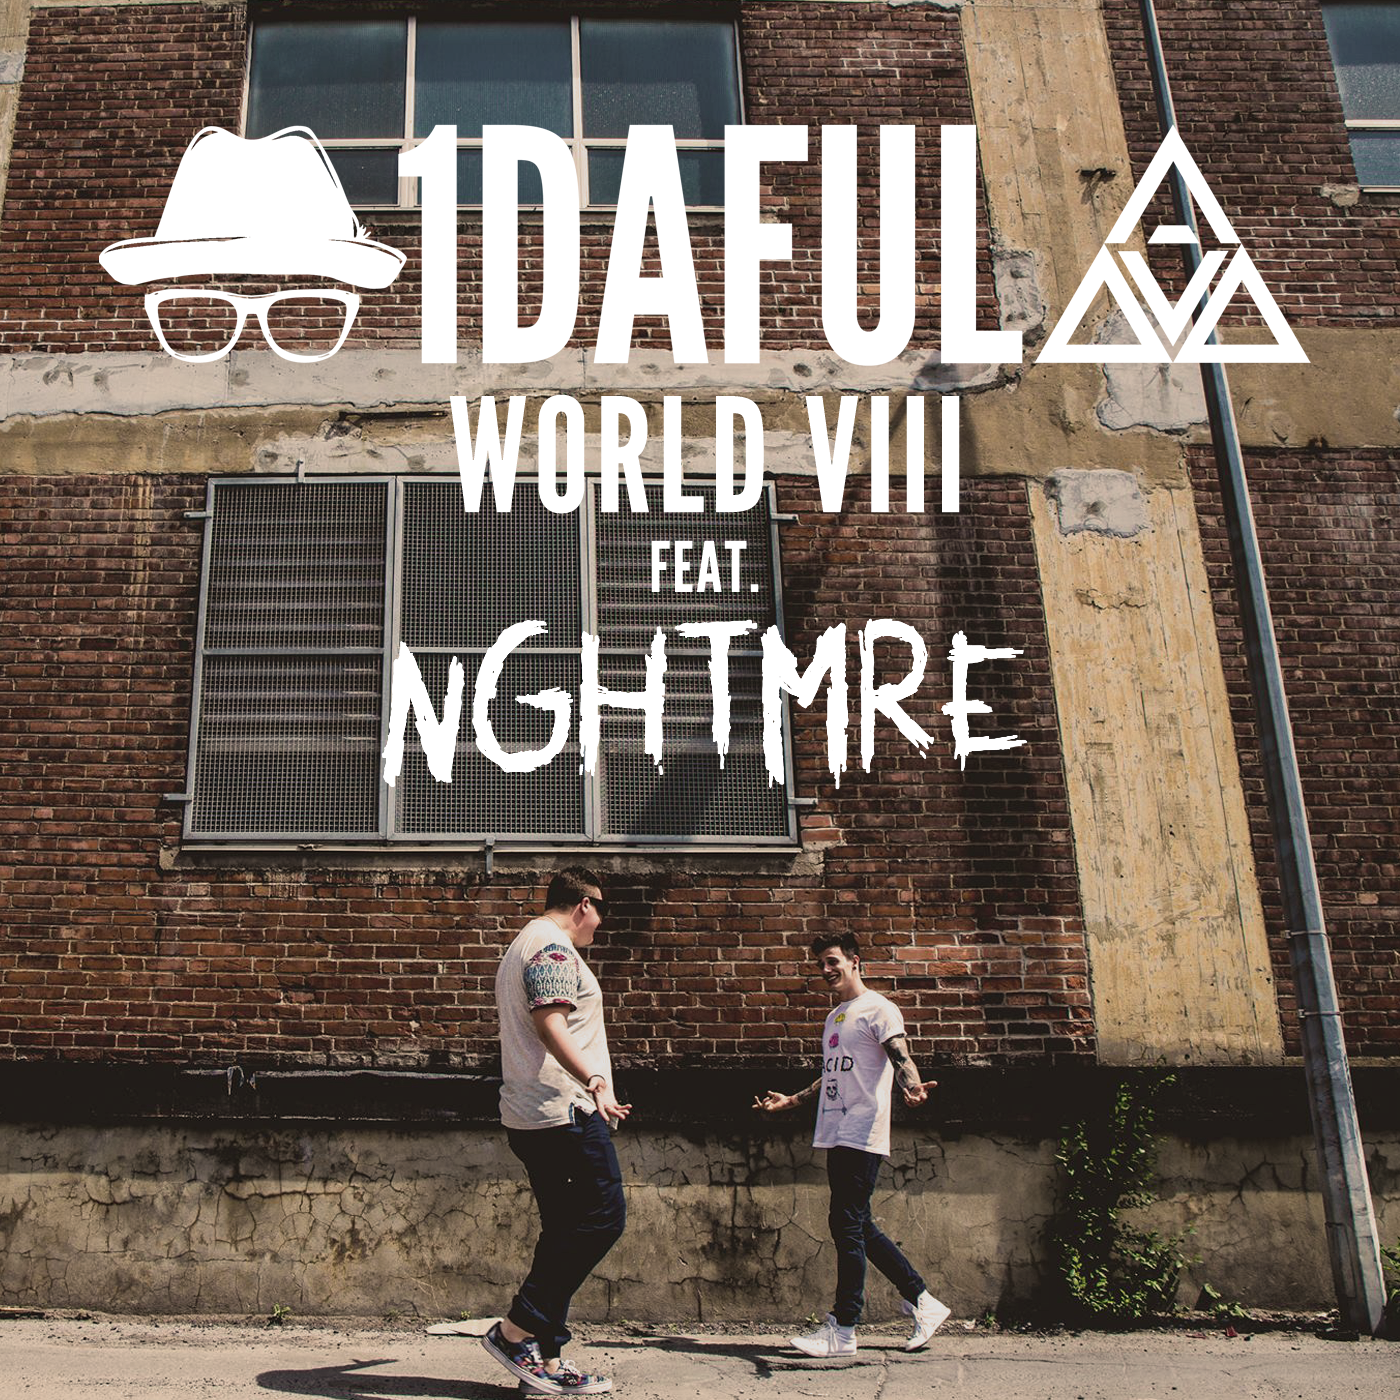 1DAFUL WORLD Featuring NGHTMRE - Artwork